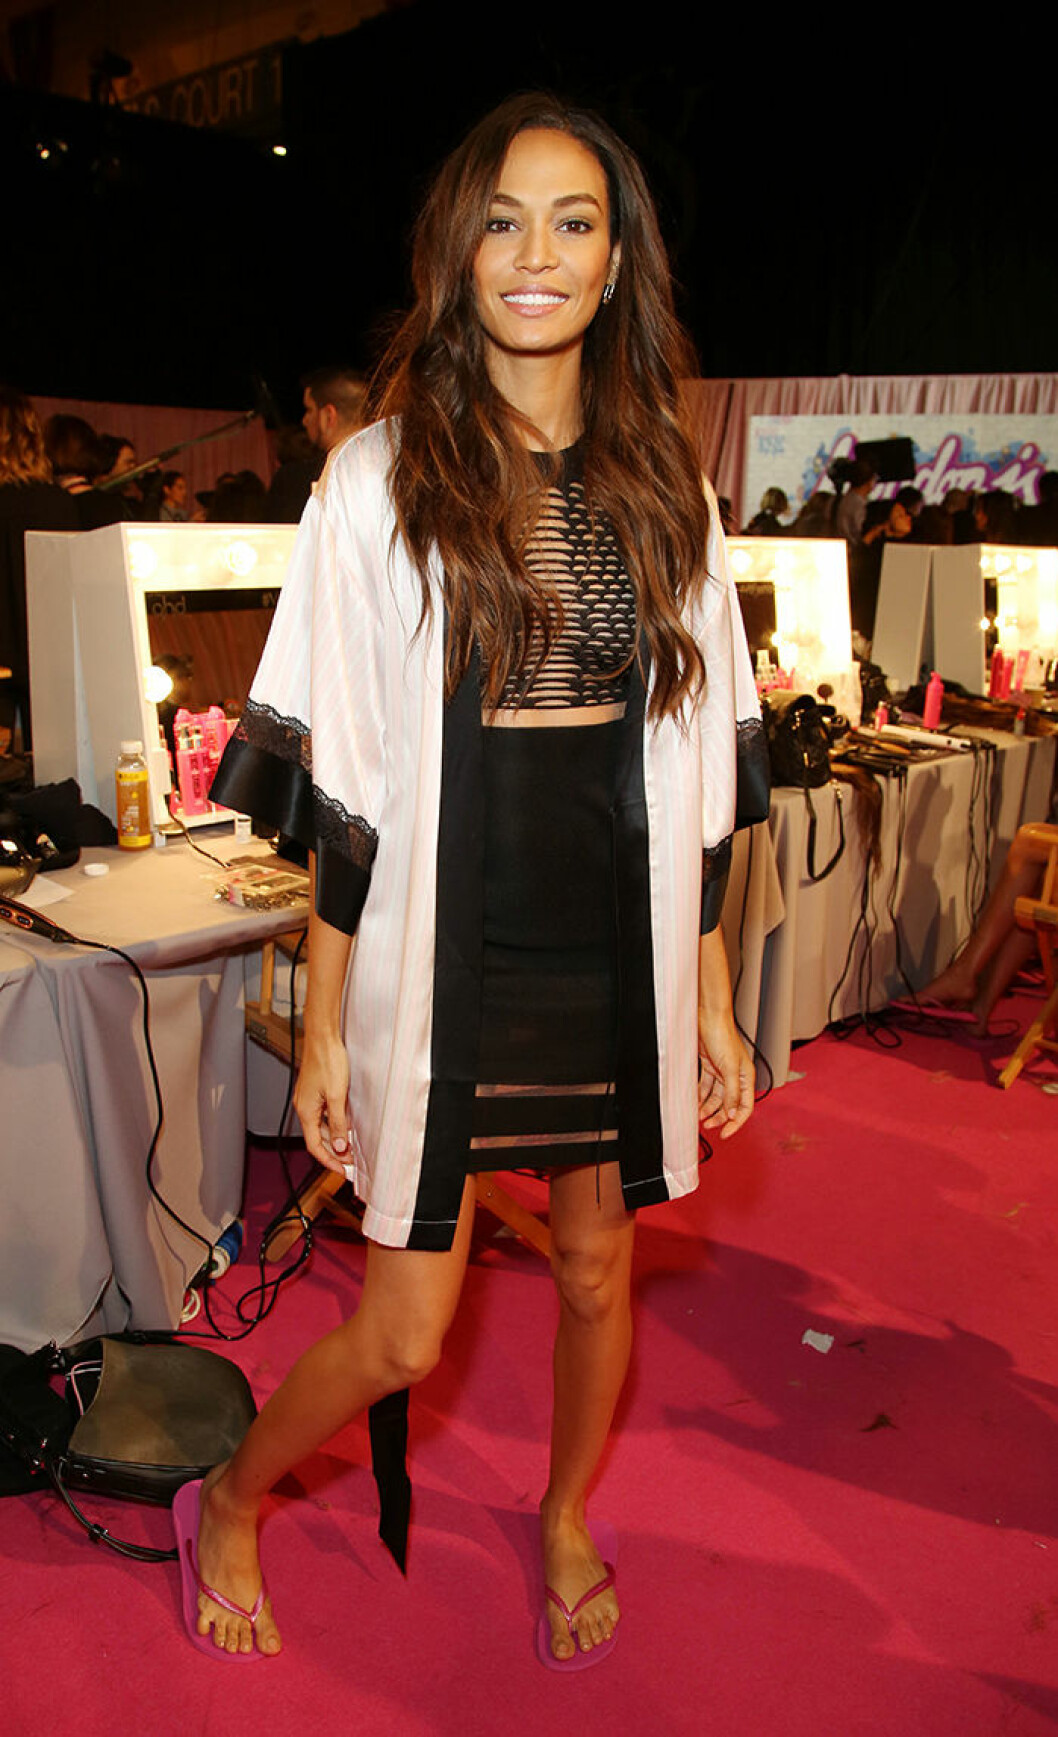 Victoria's Secret Fashion Show, Backstage, London, Britain - 02 Dec 2014